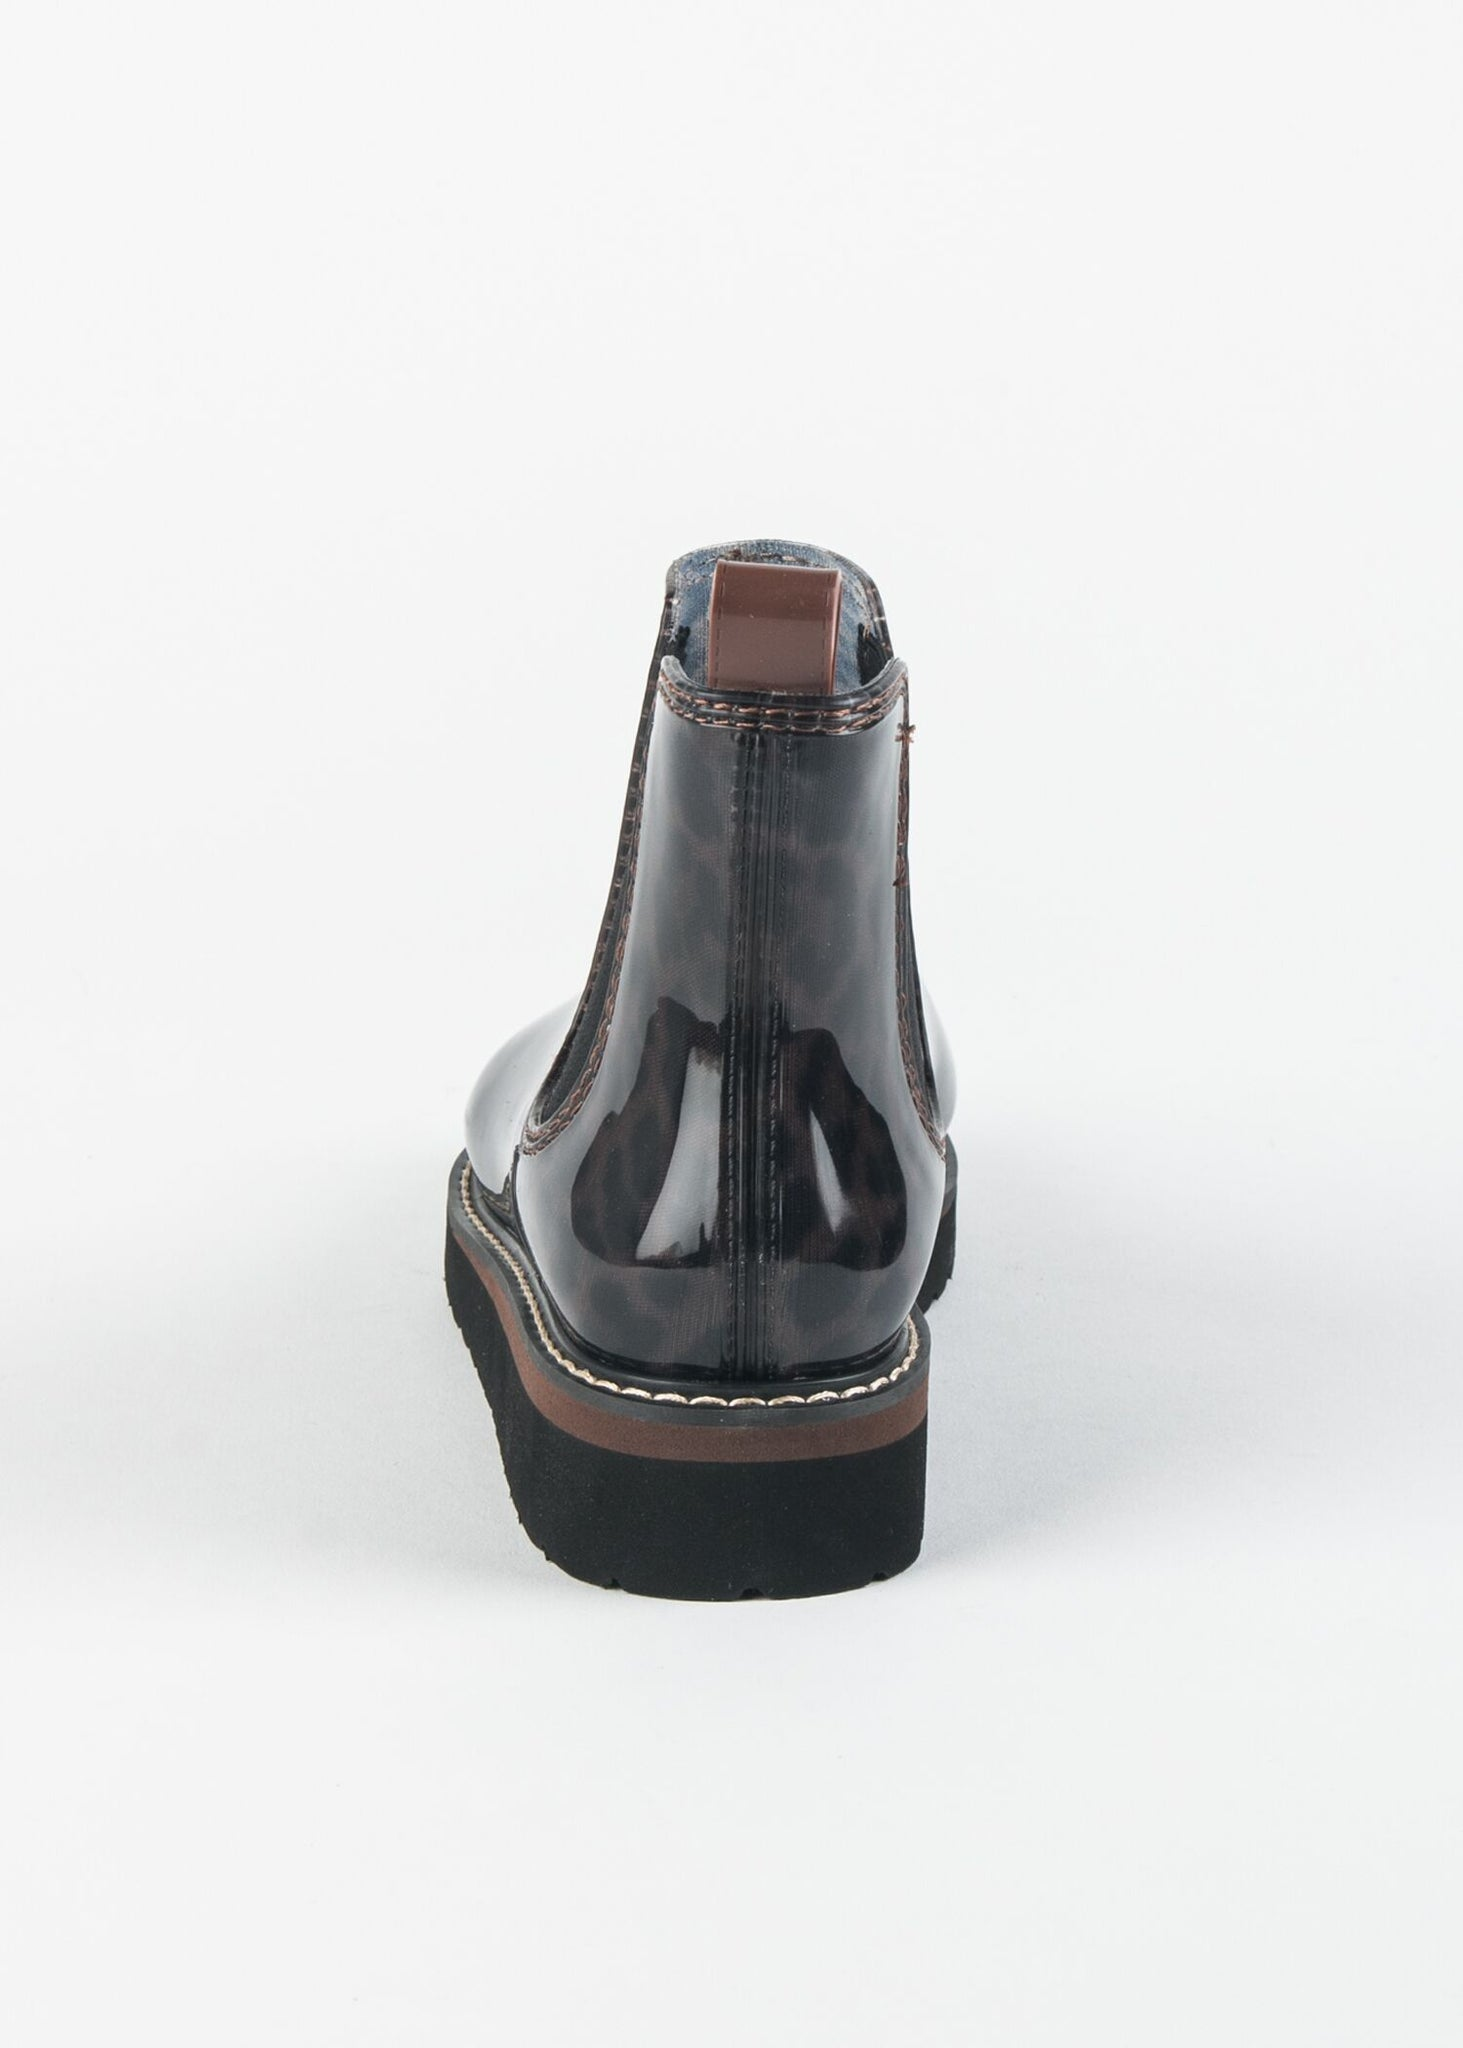 KENSINGTON CHELSEA RAINBOOT